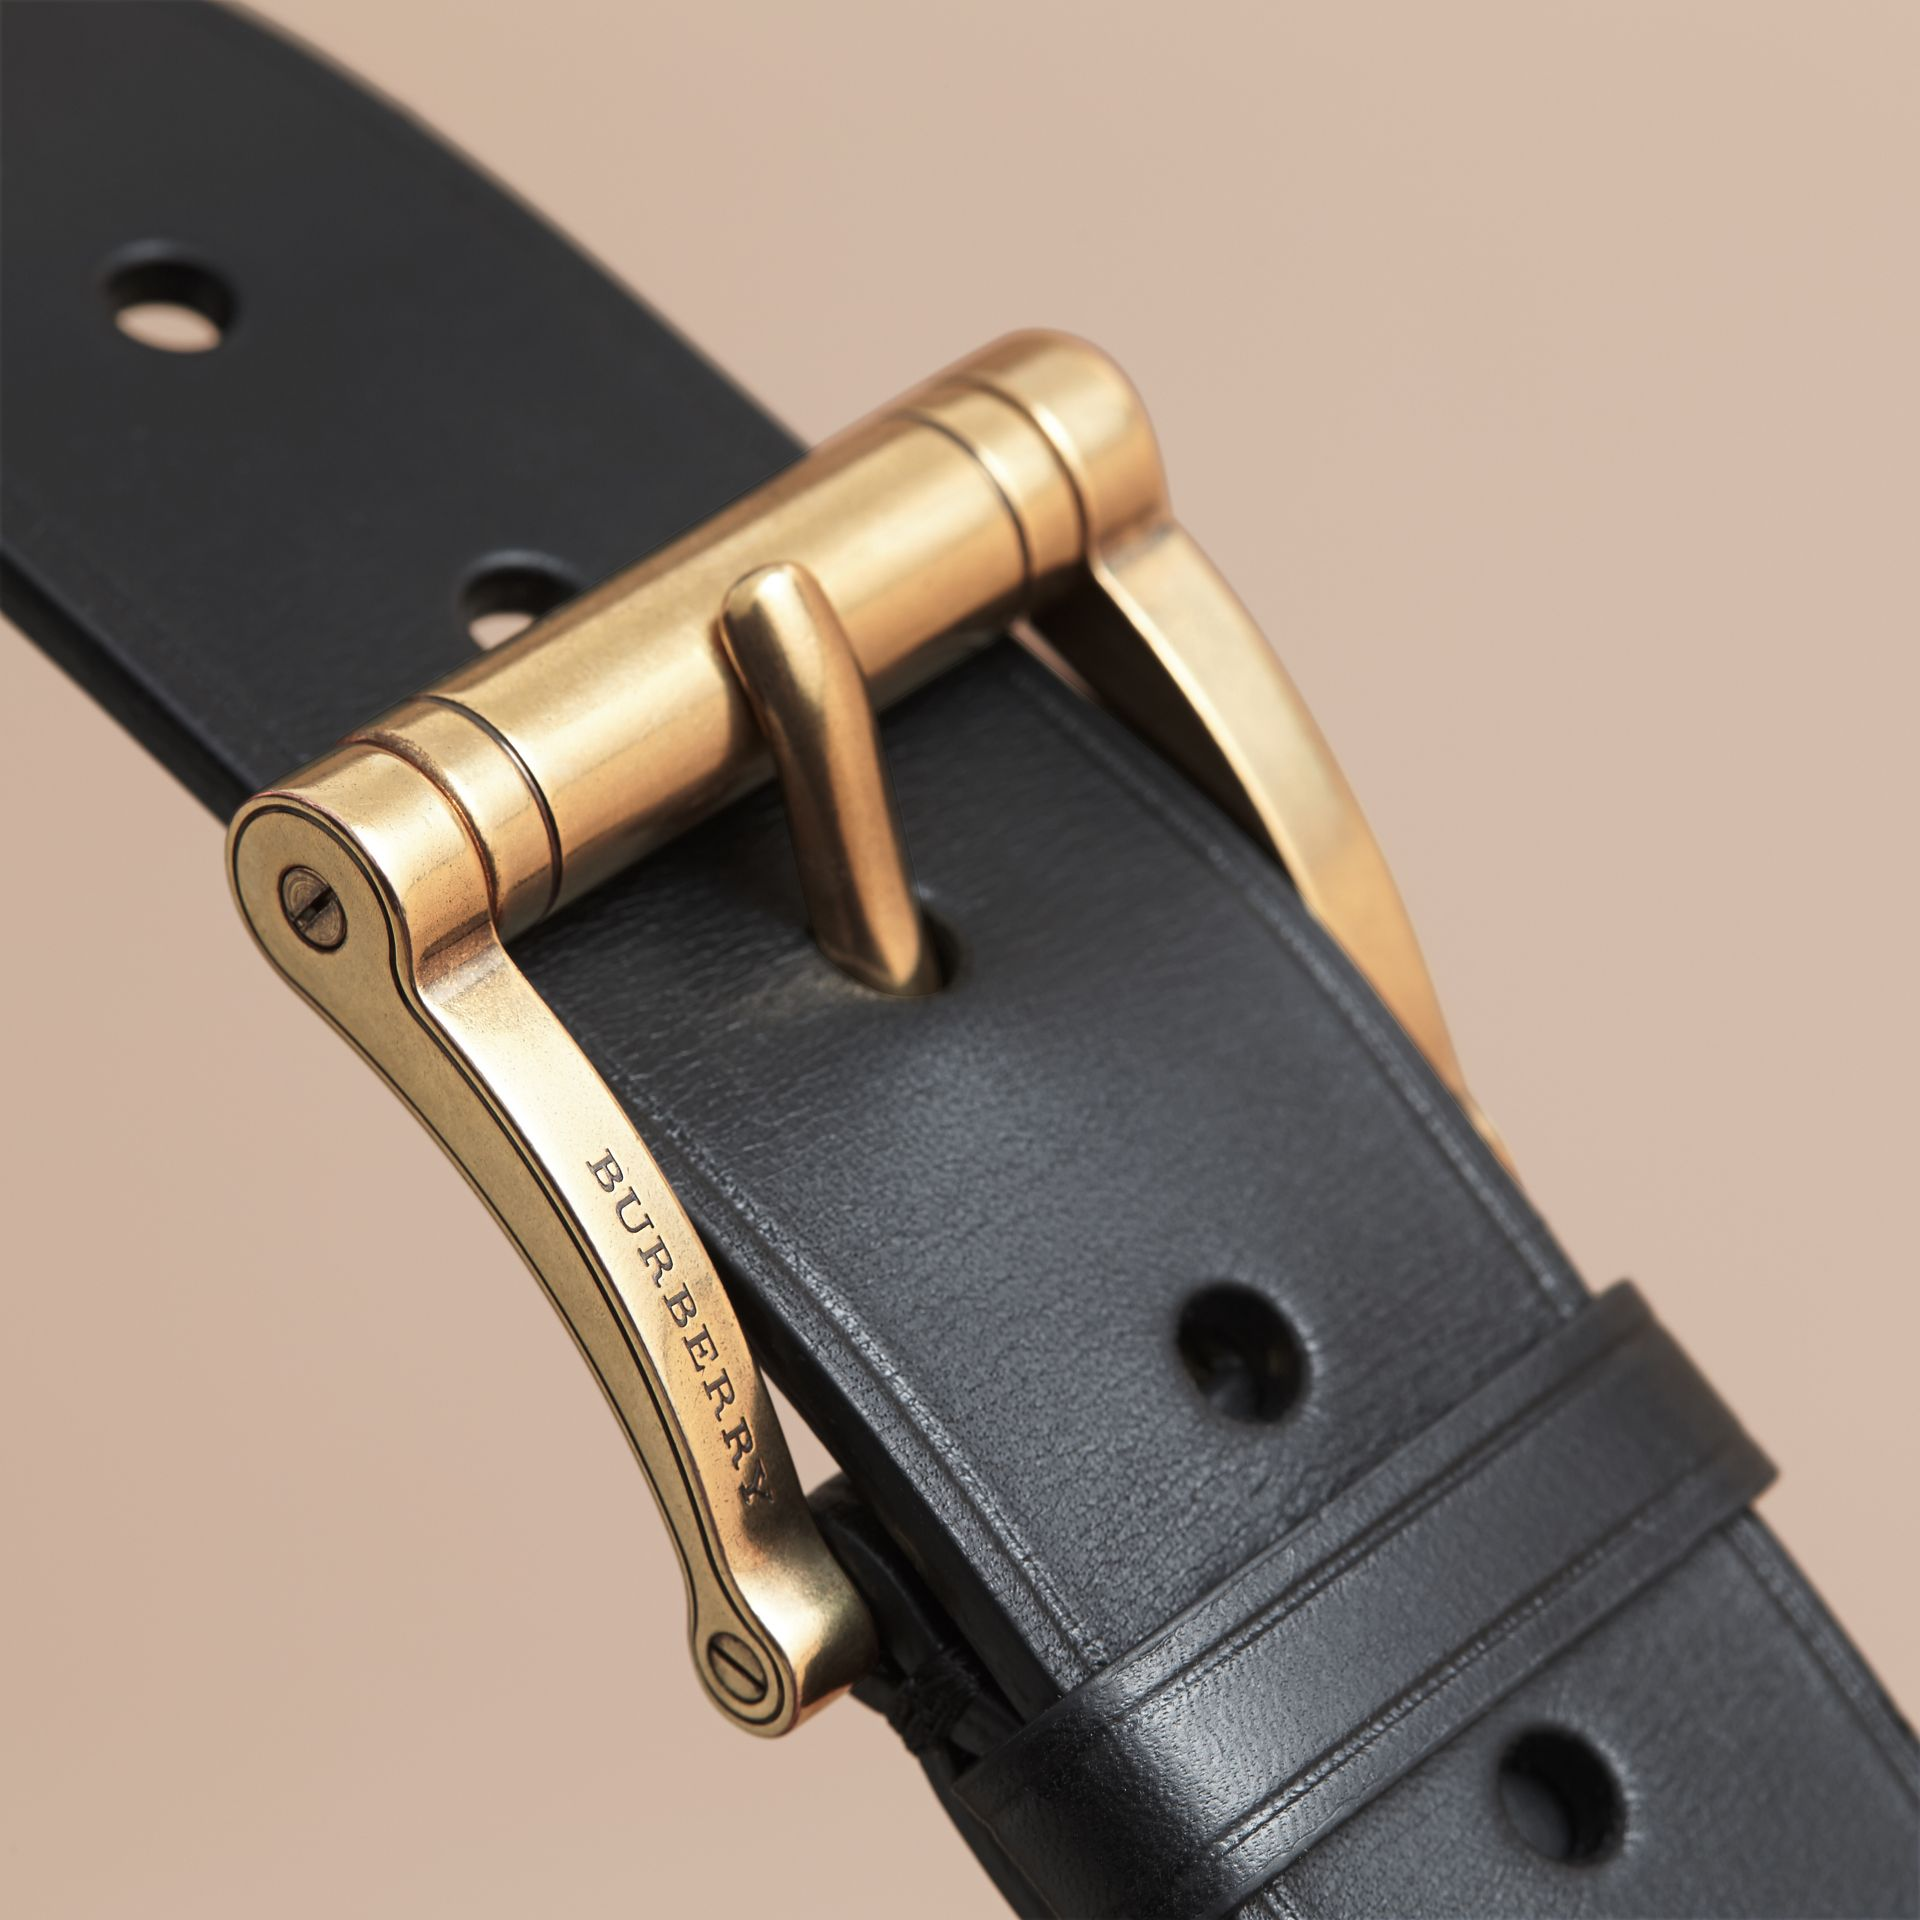 Brass Buckle Leather Belt in Black - Men | Burberry - gallery image 2